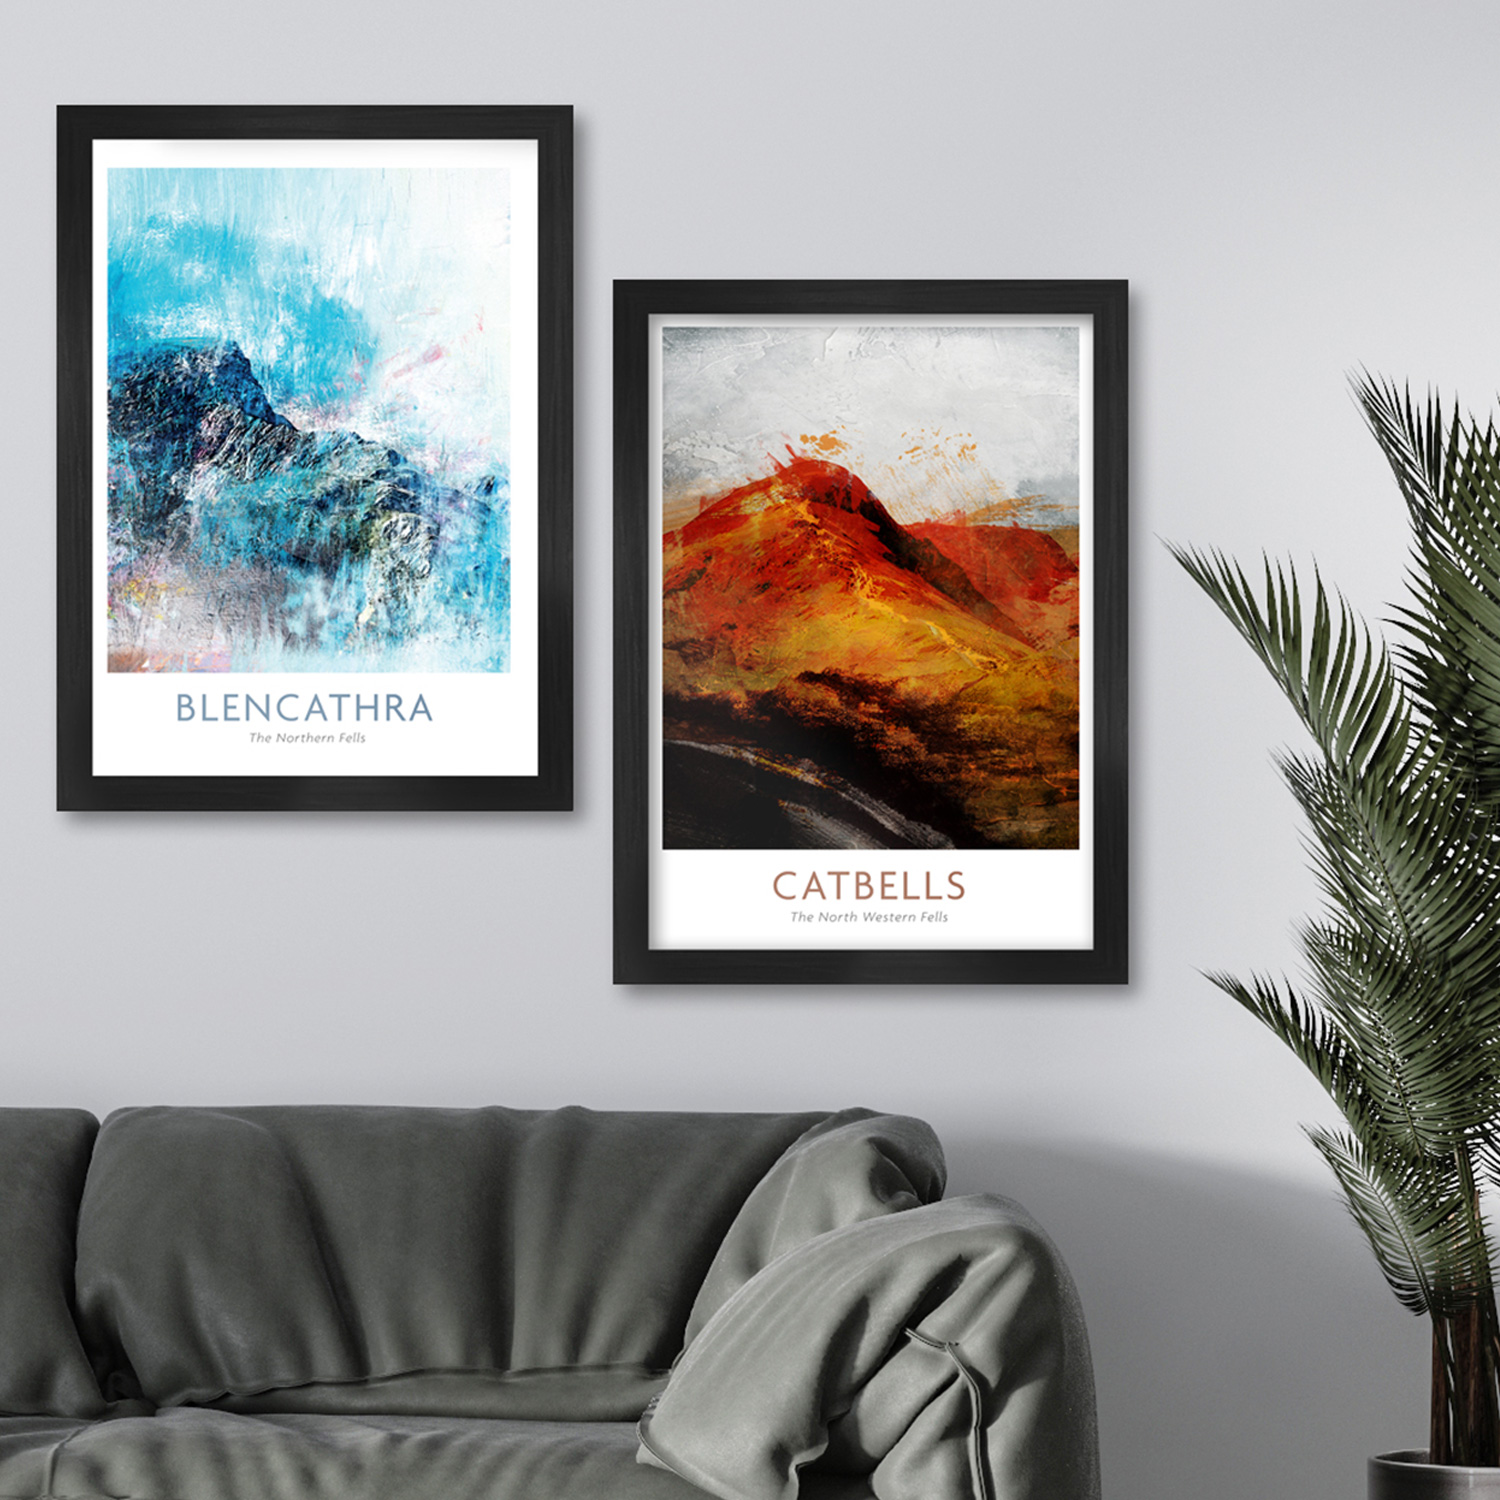 Blencathra and Catbells fell posters